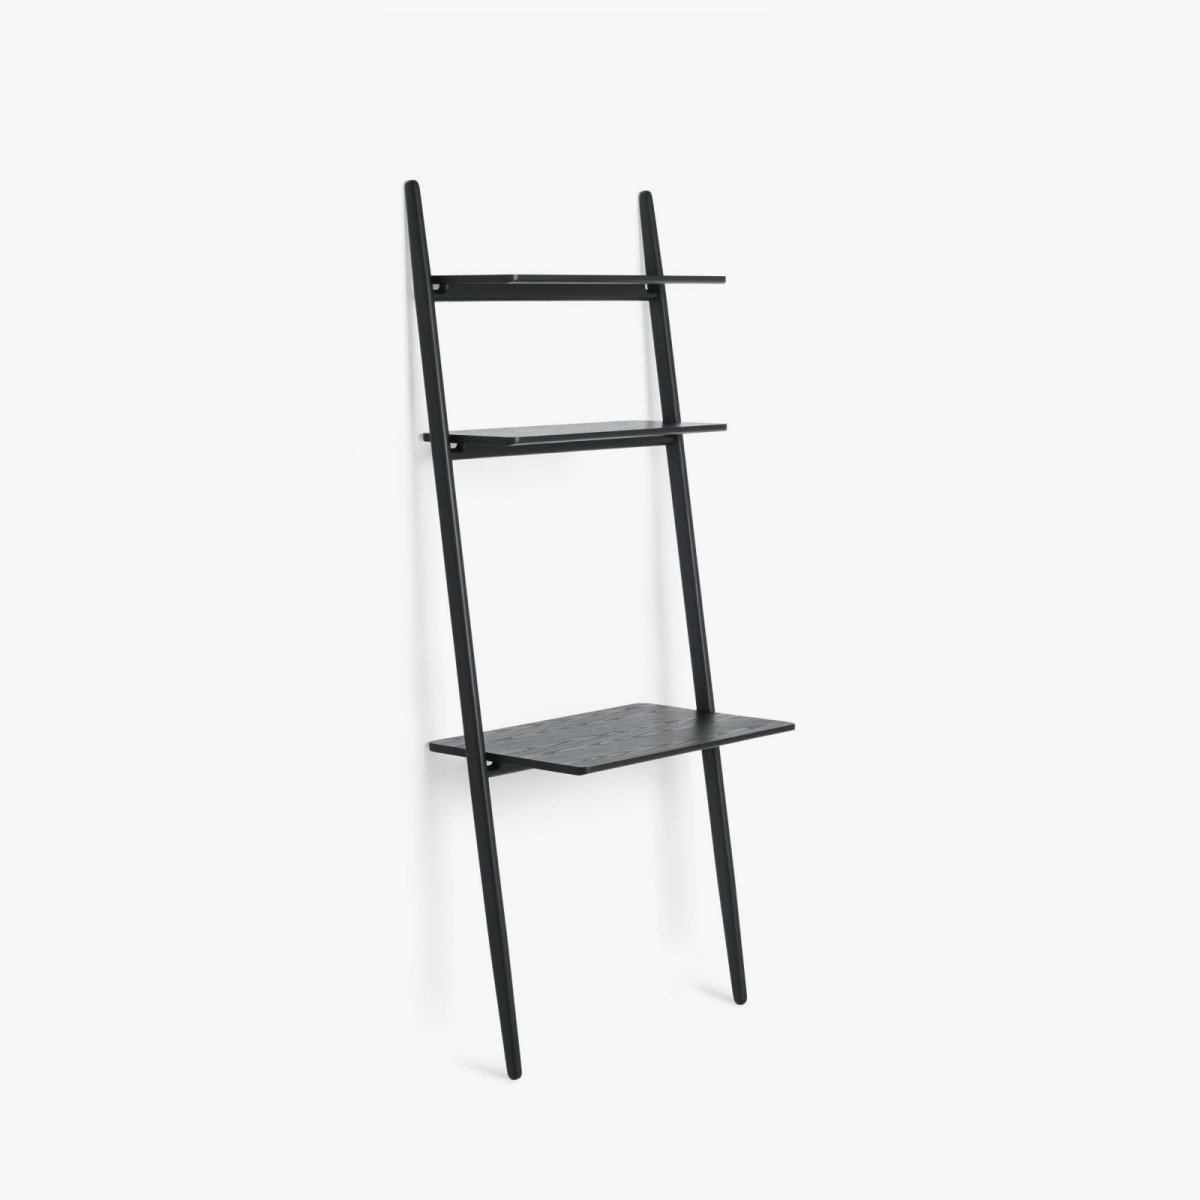 Folk Ladder Desk Shelving, black.